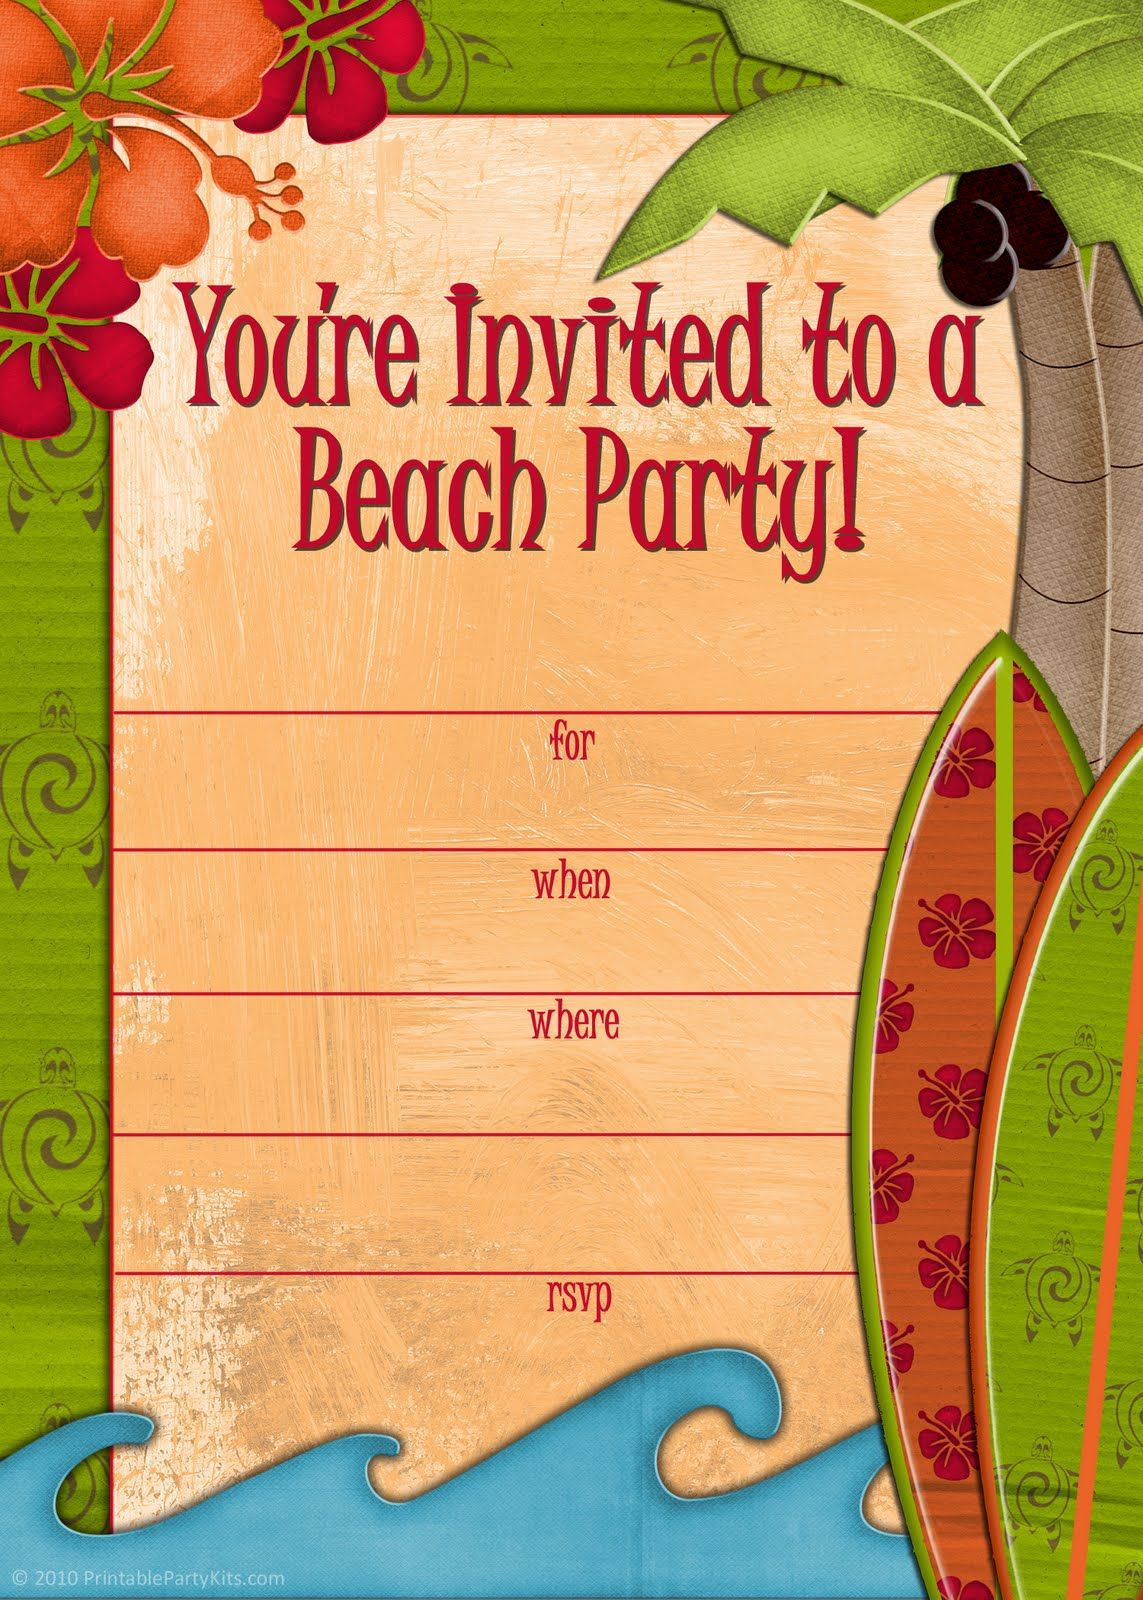 Free Printable Beach Party Invitations From Printablepartyinvitationsspot